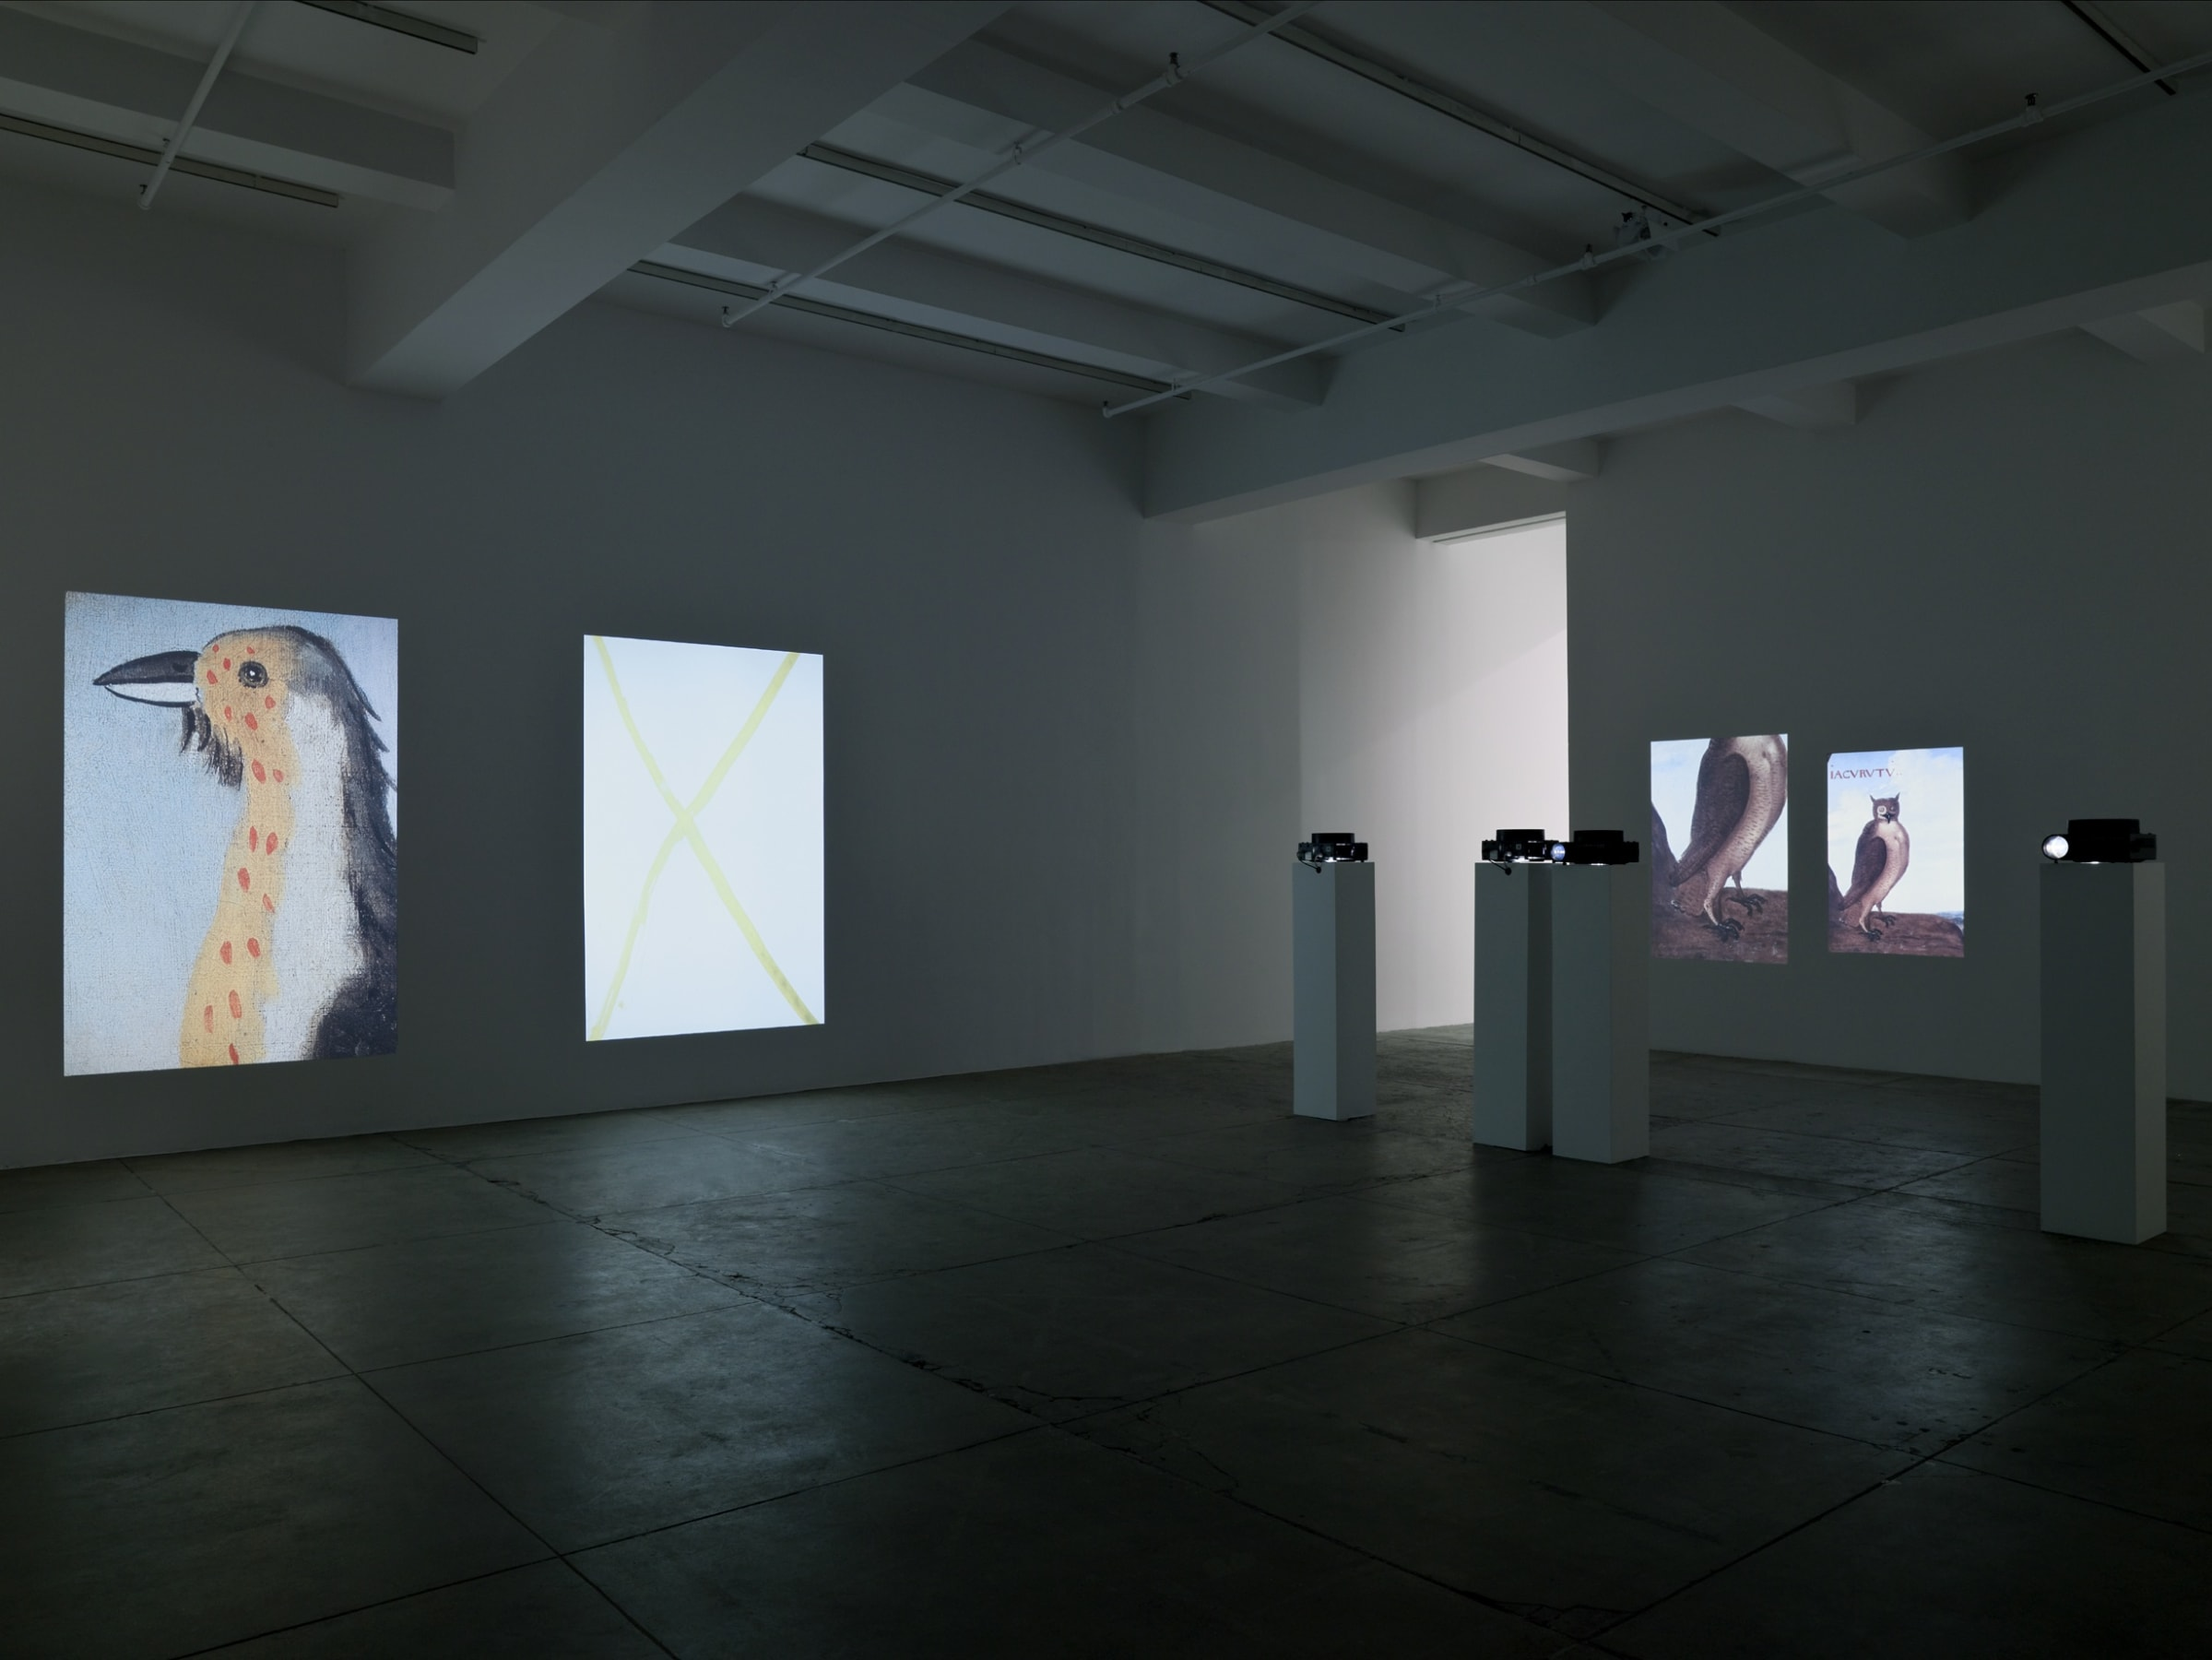 Four large projections of birds illuminate a large, dimly lit room.